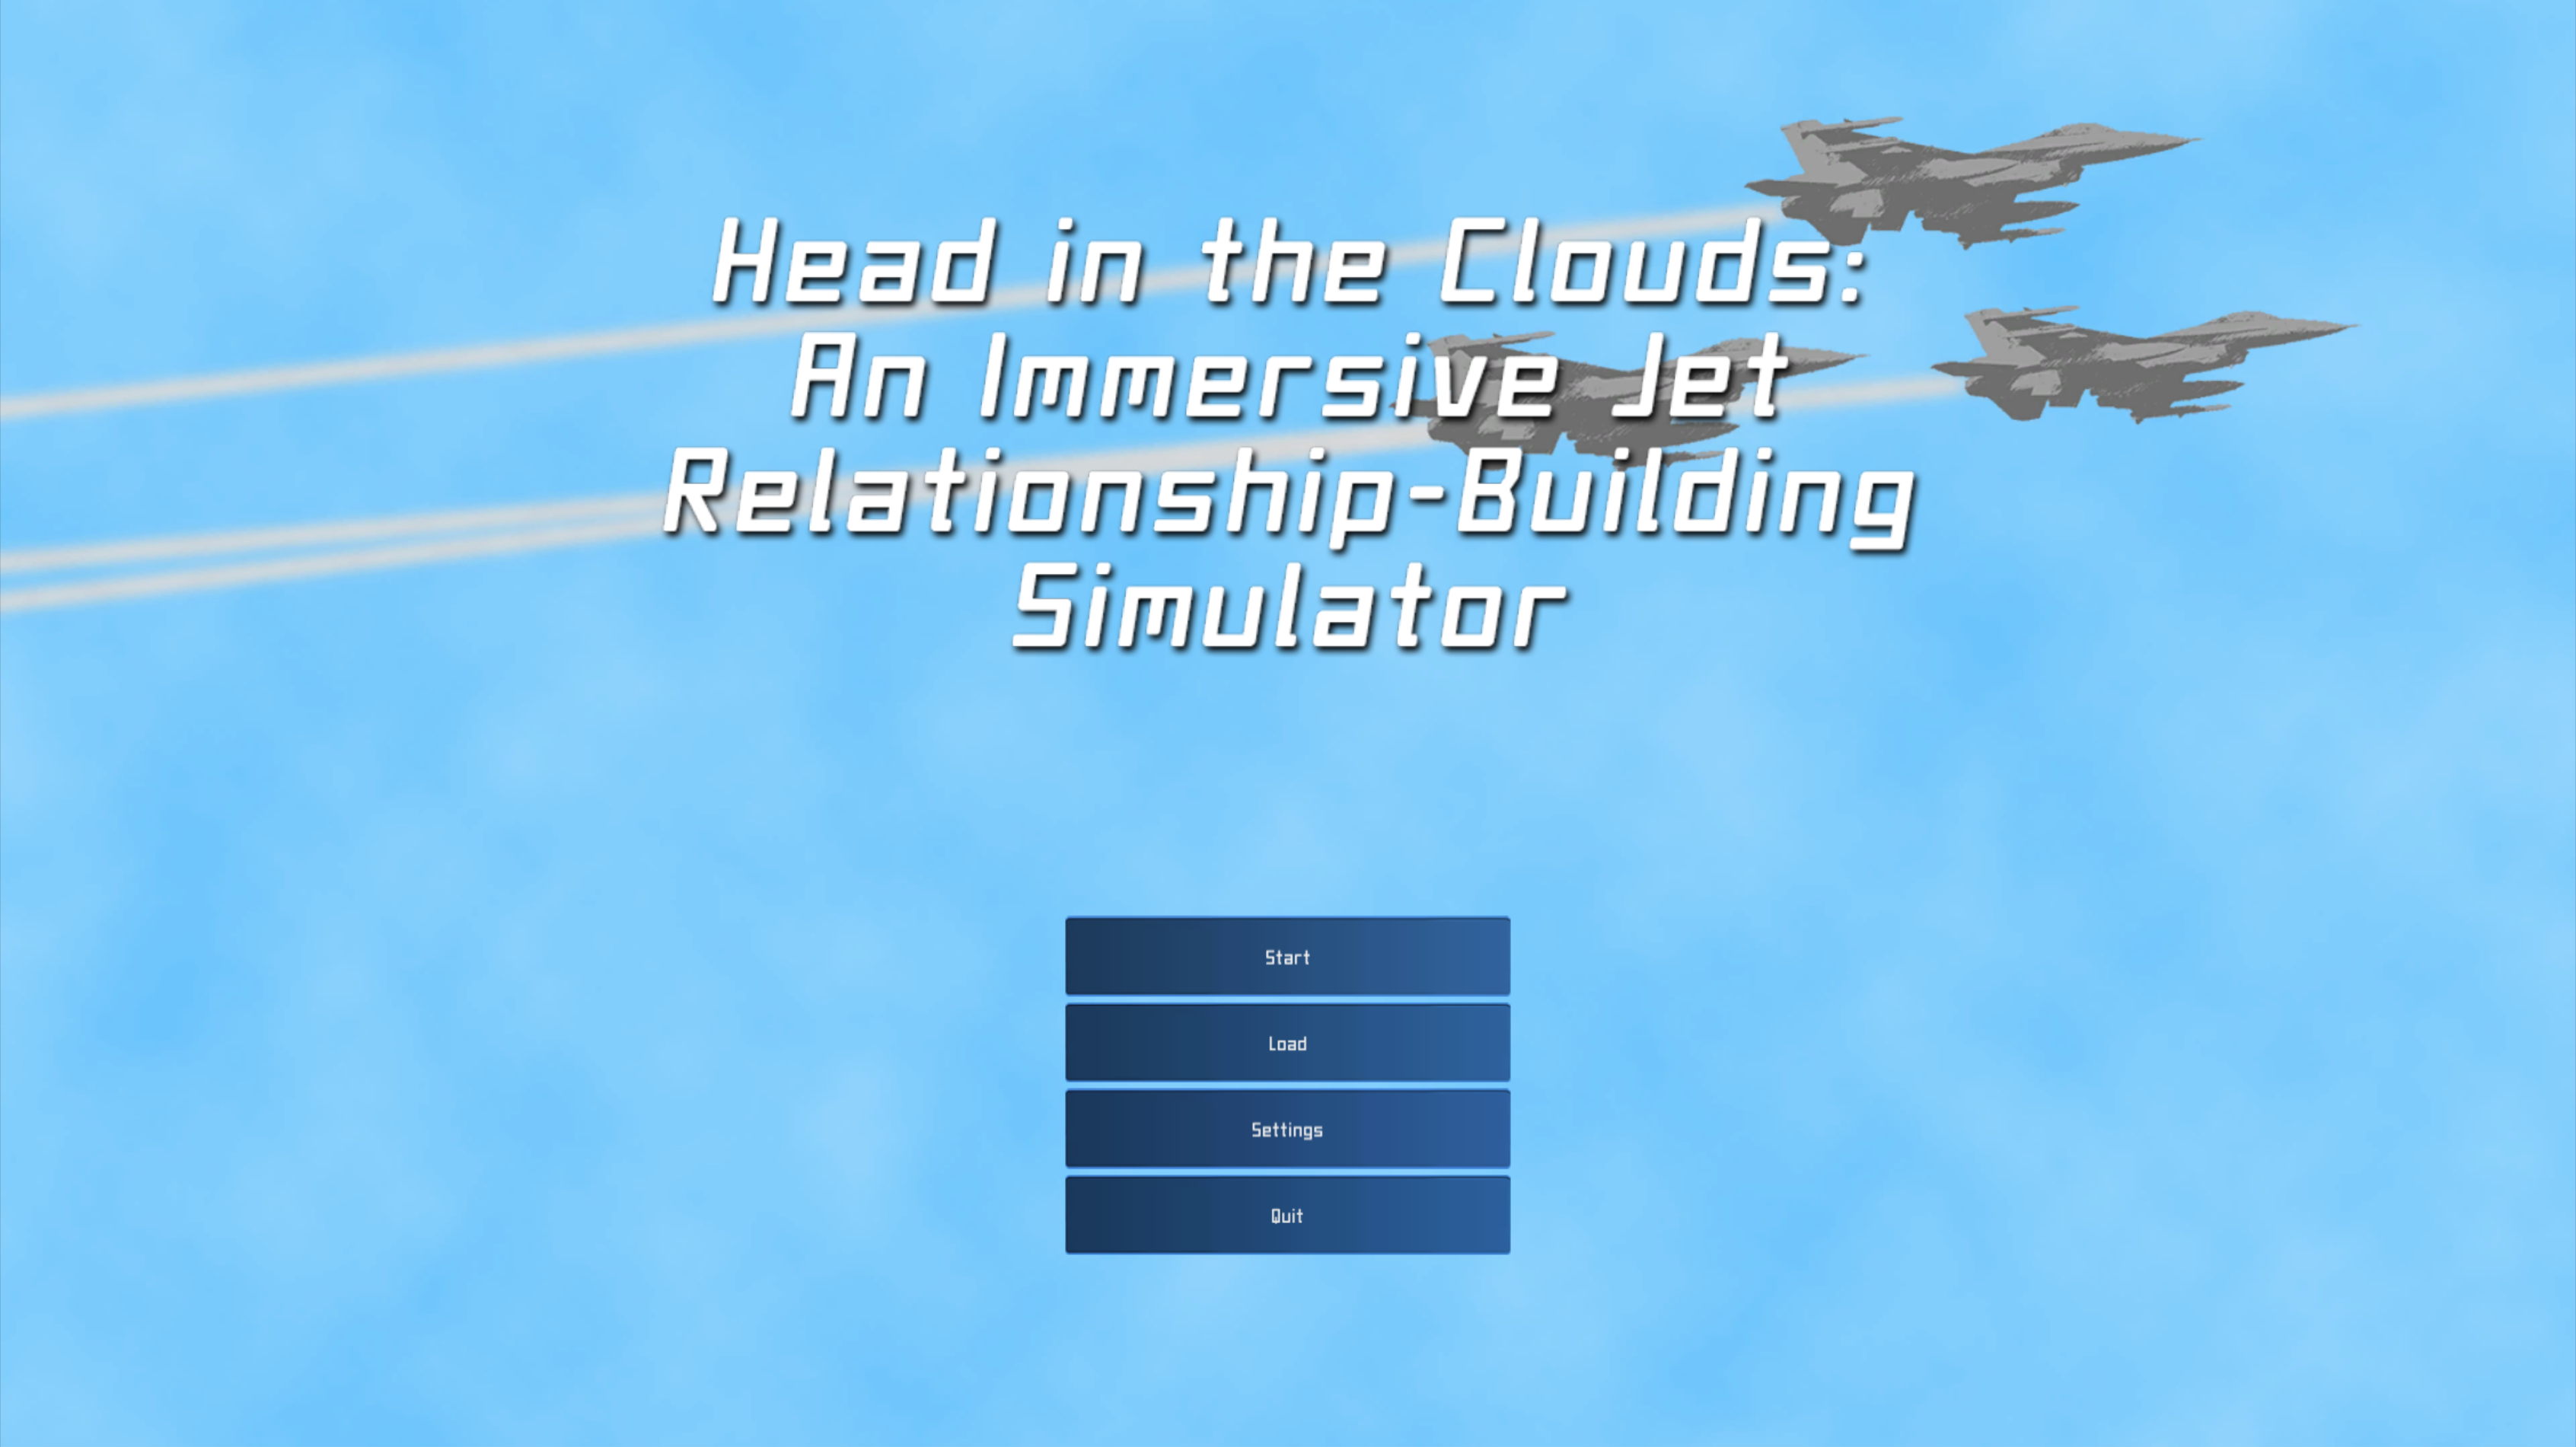 Head in the Clouds: An Immersive Jet Relationship-Building Simulator